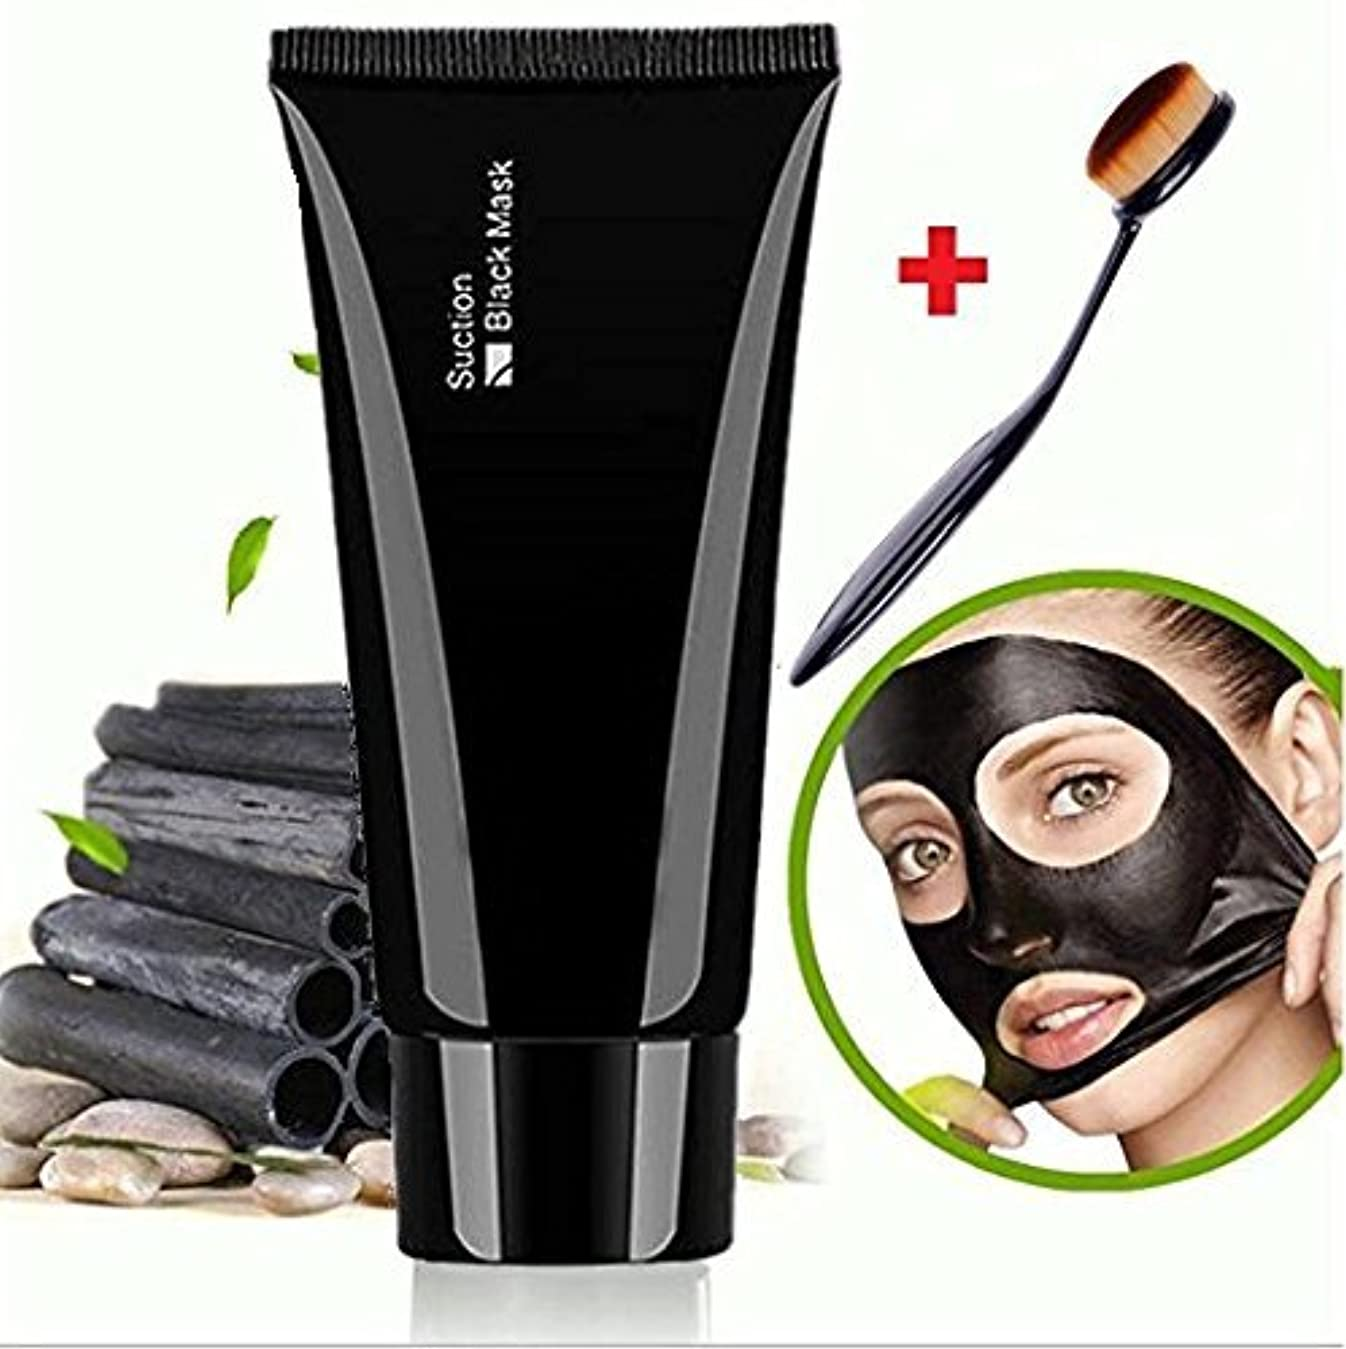 Facial Mask Black, Face Apeel Cleansing Mask Deep Cleanser Blackhead Acne Remover Peel off Mask + Oval Brush